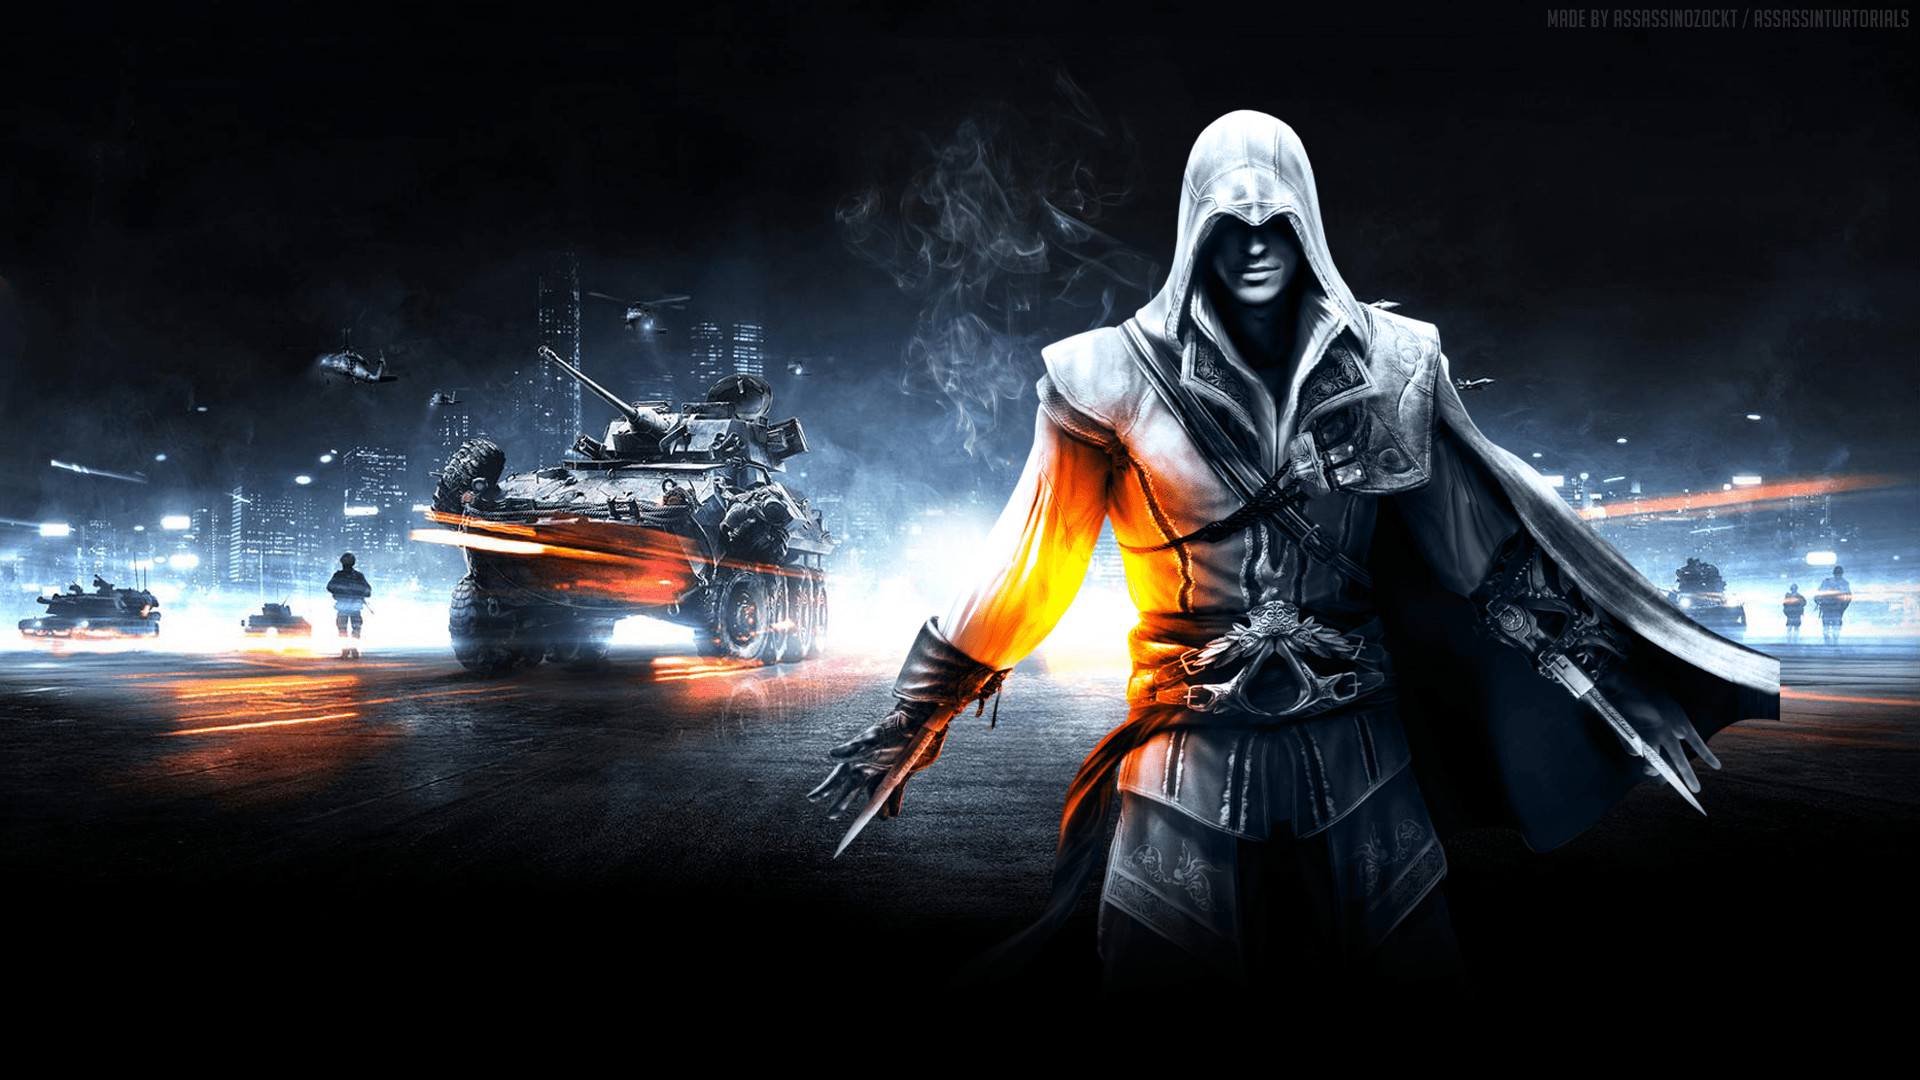 HD Wallpapers For PC 1080p Free Download   Best Games Wallpapers    Pinterest   Hd wallpaper and Wallpaper